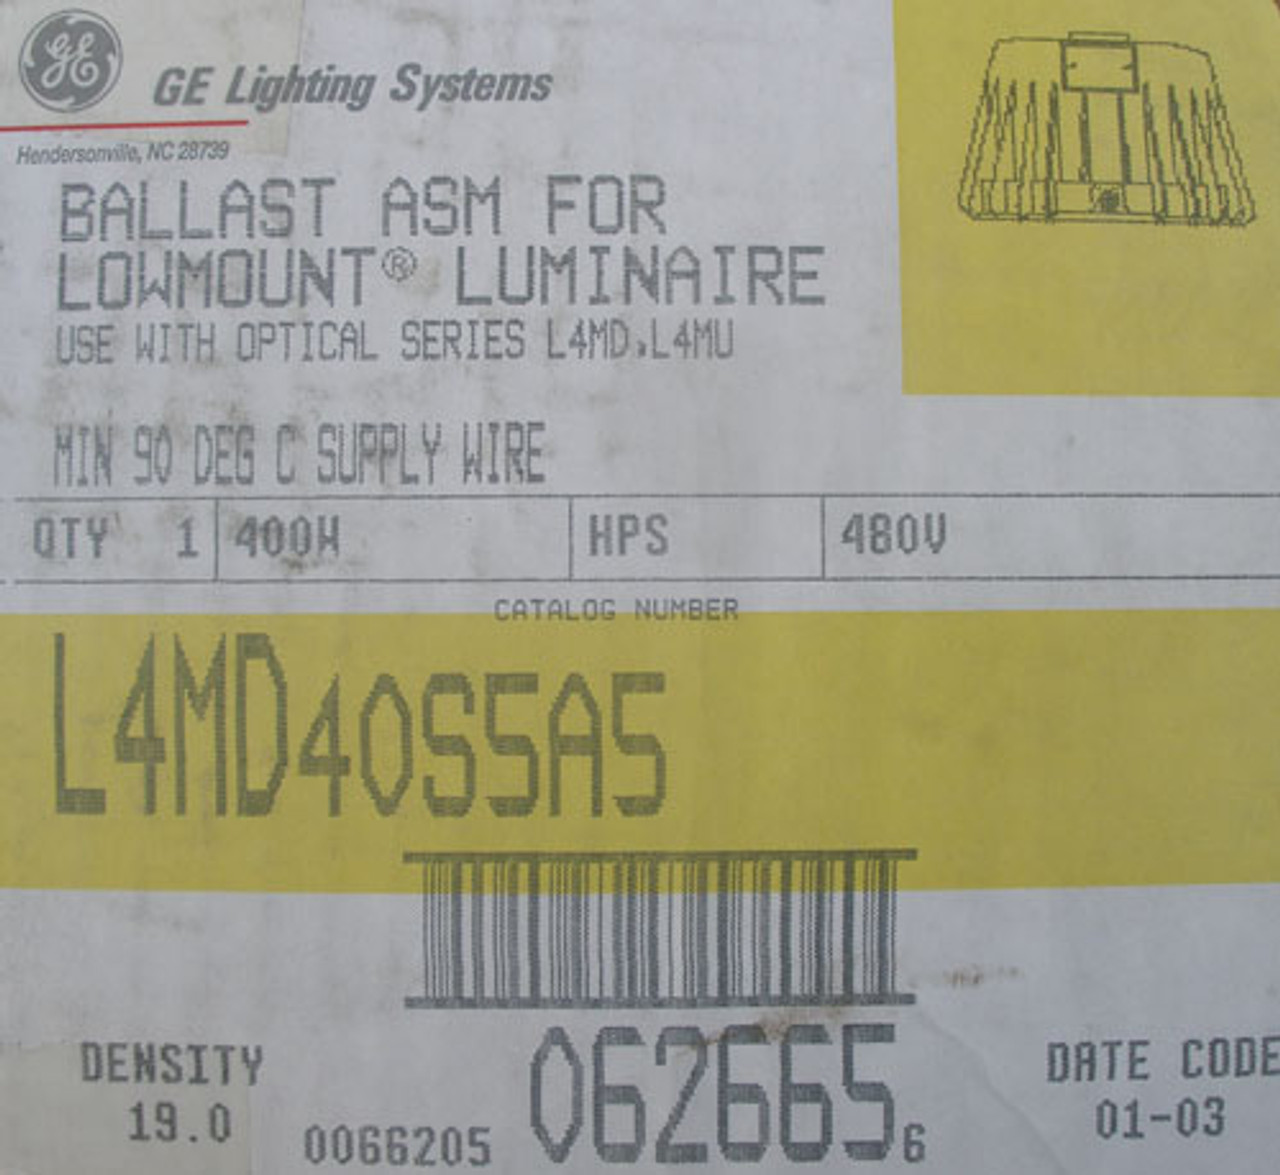 GE L4MD40S5A5 400W 480V Ballast ASM for Lowmount Luminaire in Gray